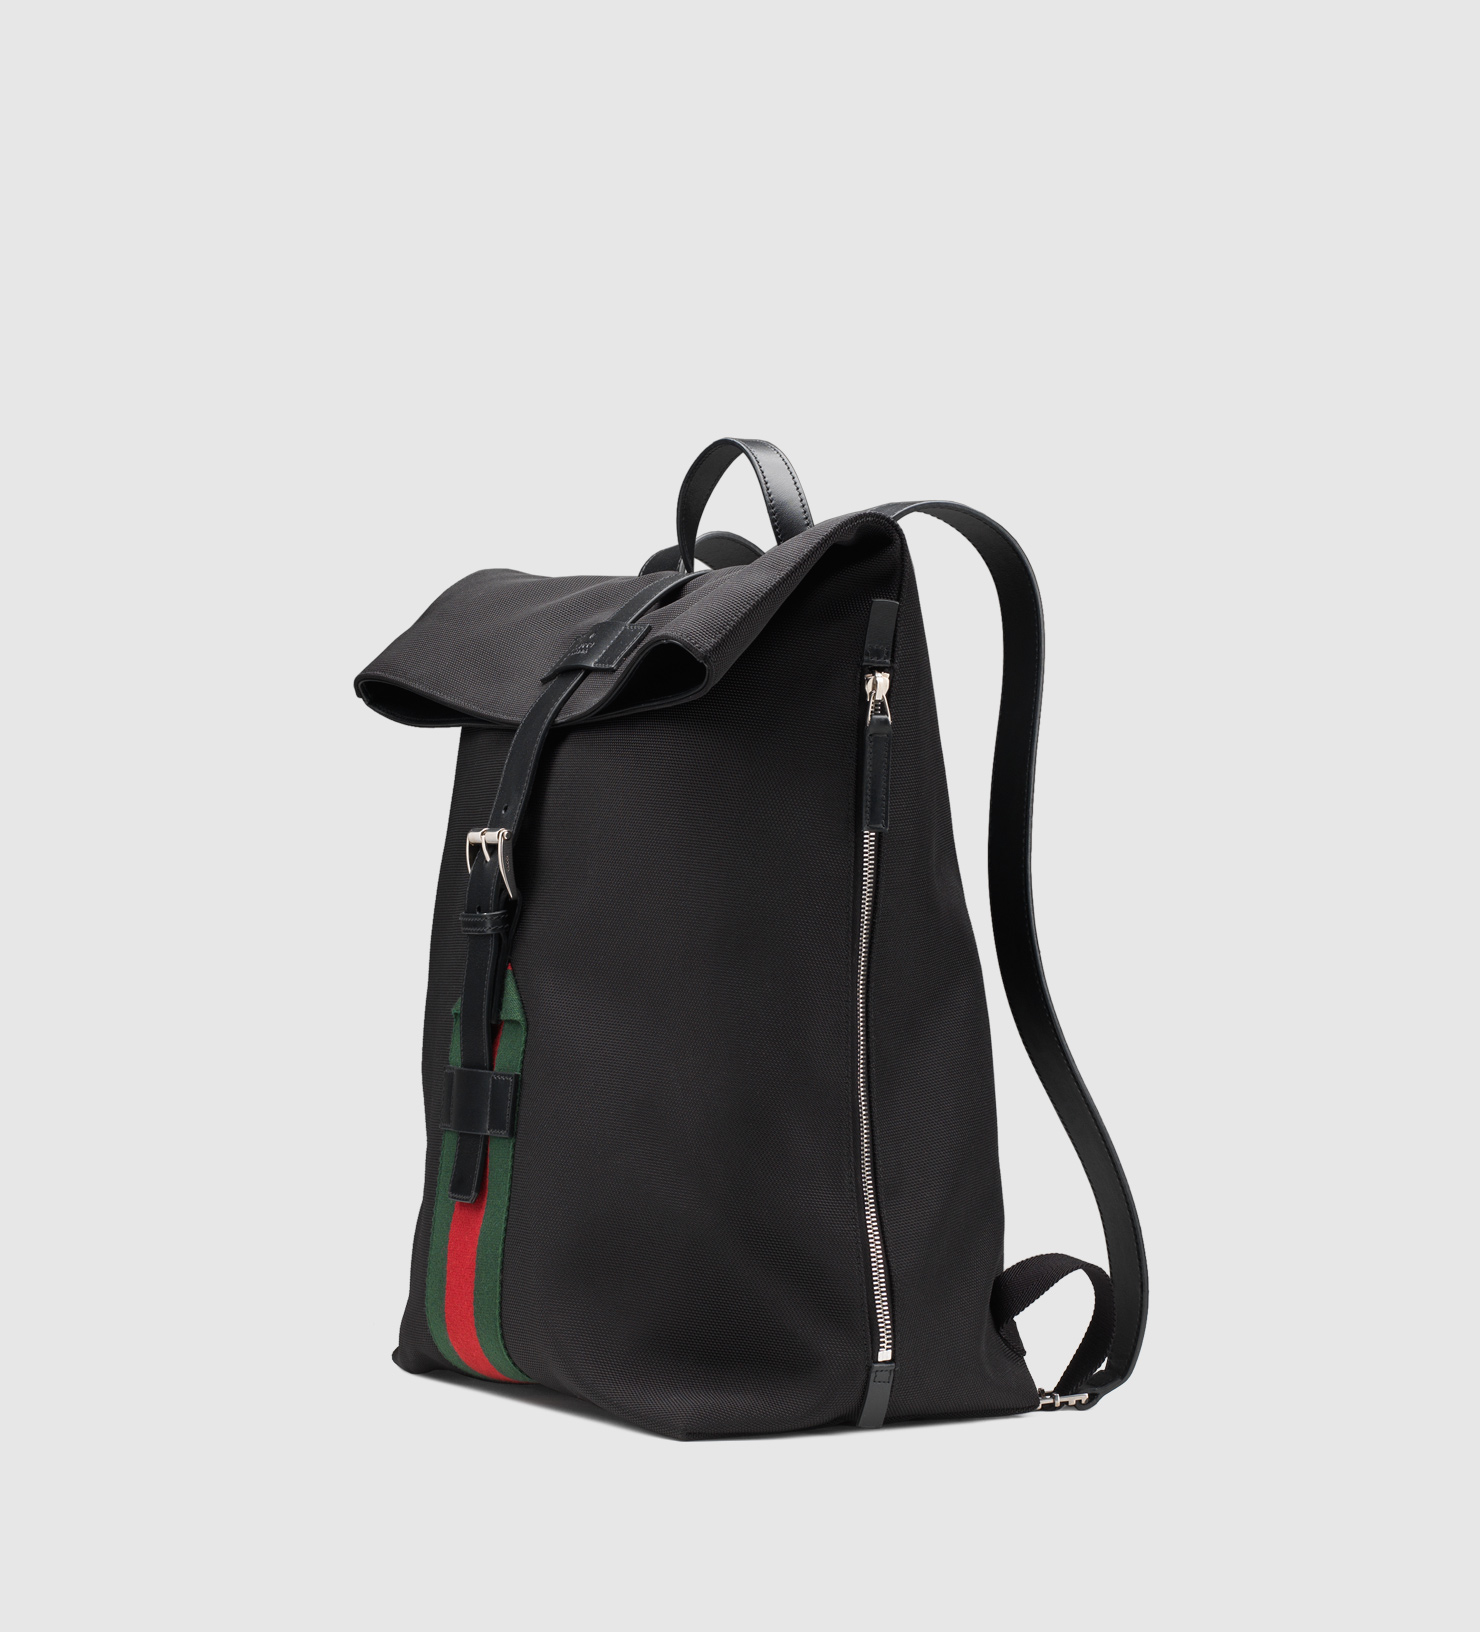 6b654b4b71d9 Lyst - Gucci Black Techno Canvas Backpack in Black for Men